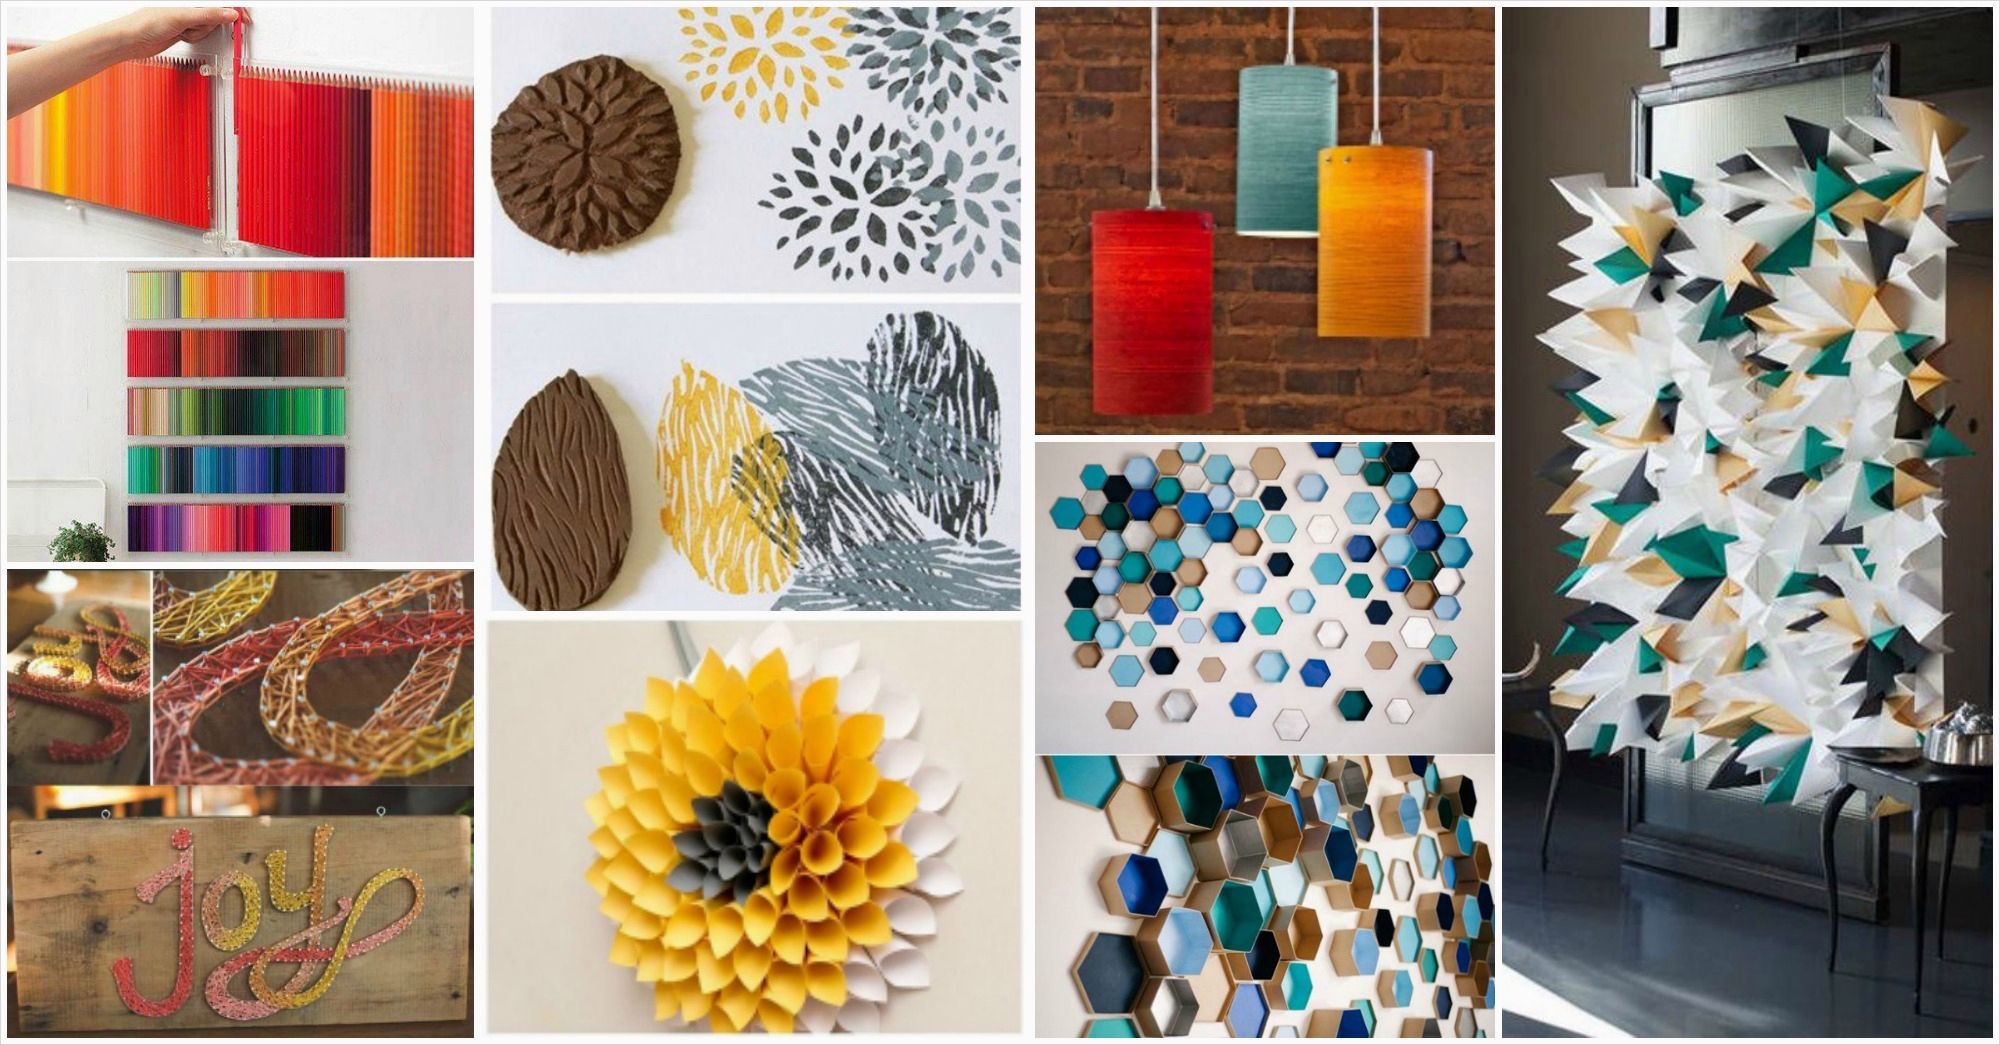 44 Creative Craft Wall Decoration Ideas 71 20 Diy Innovative Wall Art Decor Ideas that Will Leave You 4